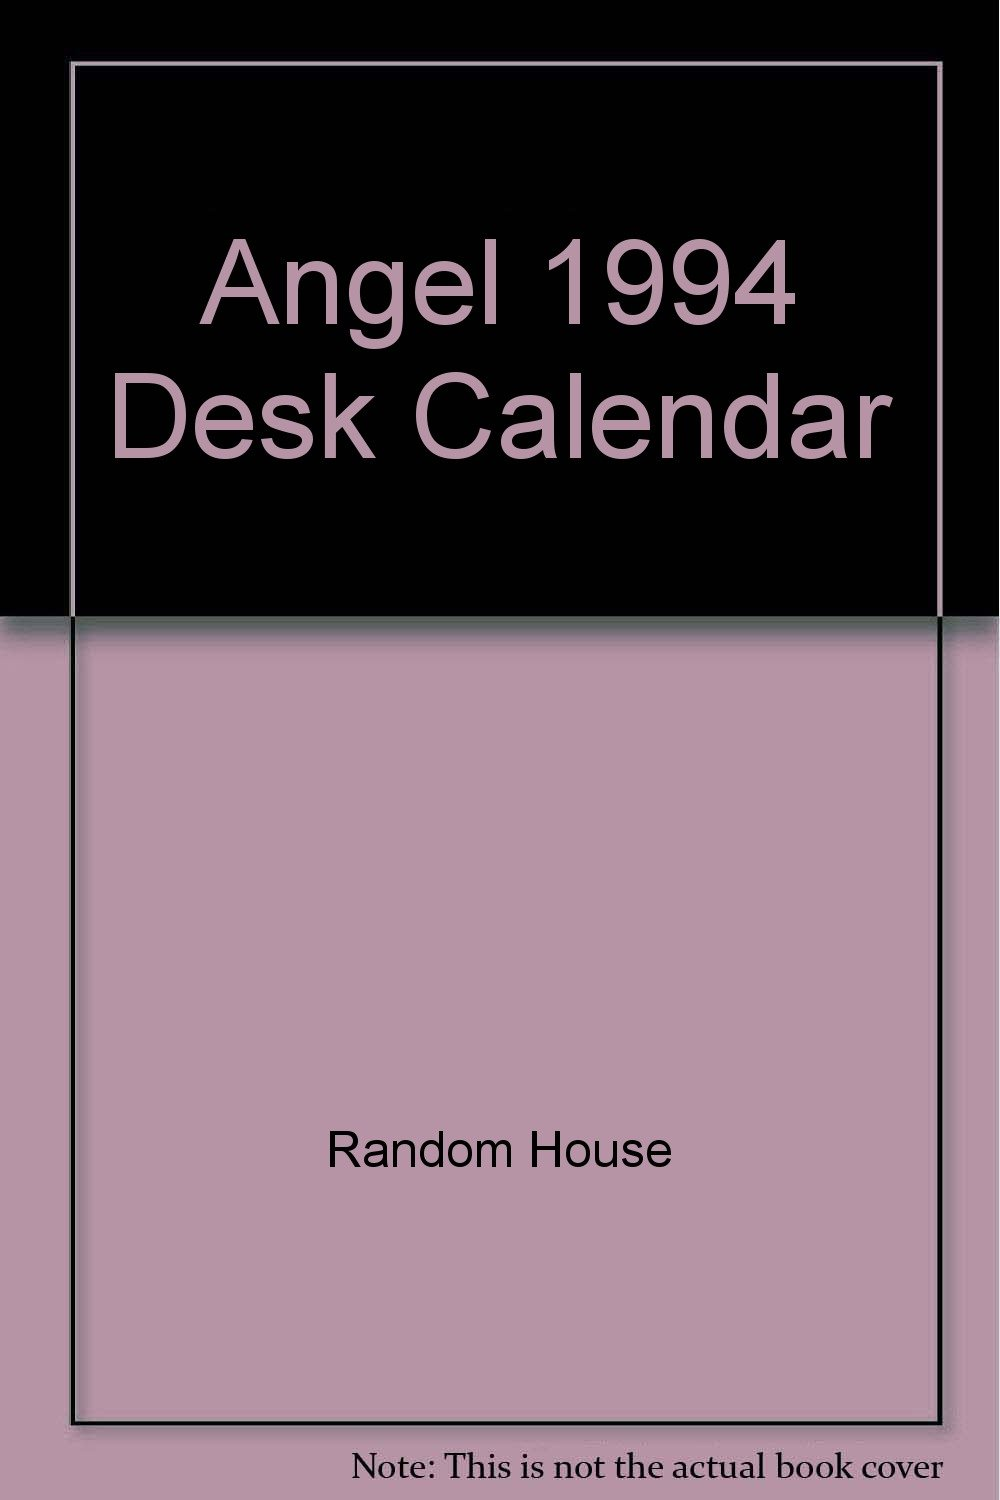 angel 1994 desk calendar